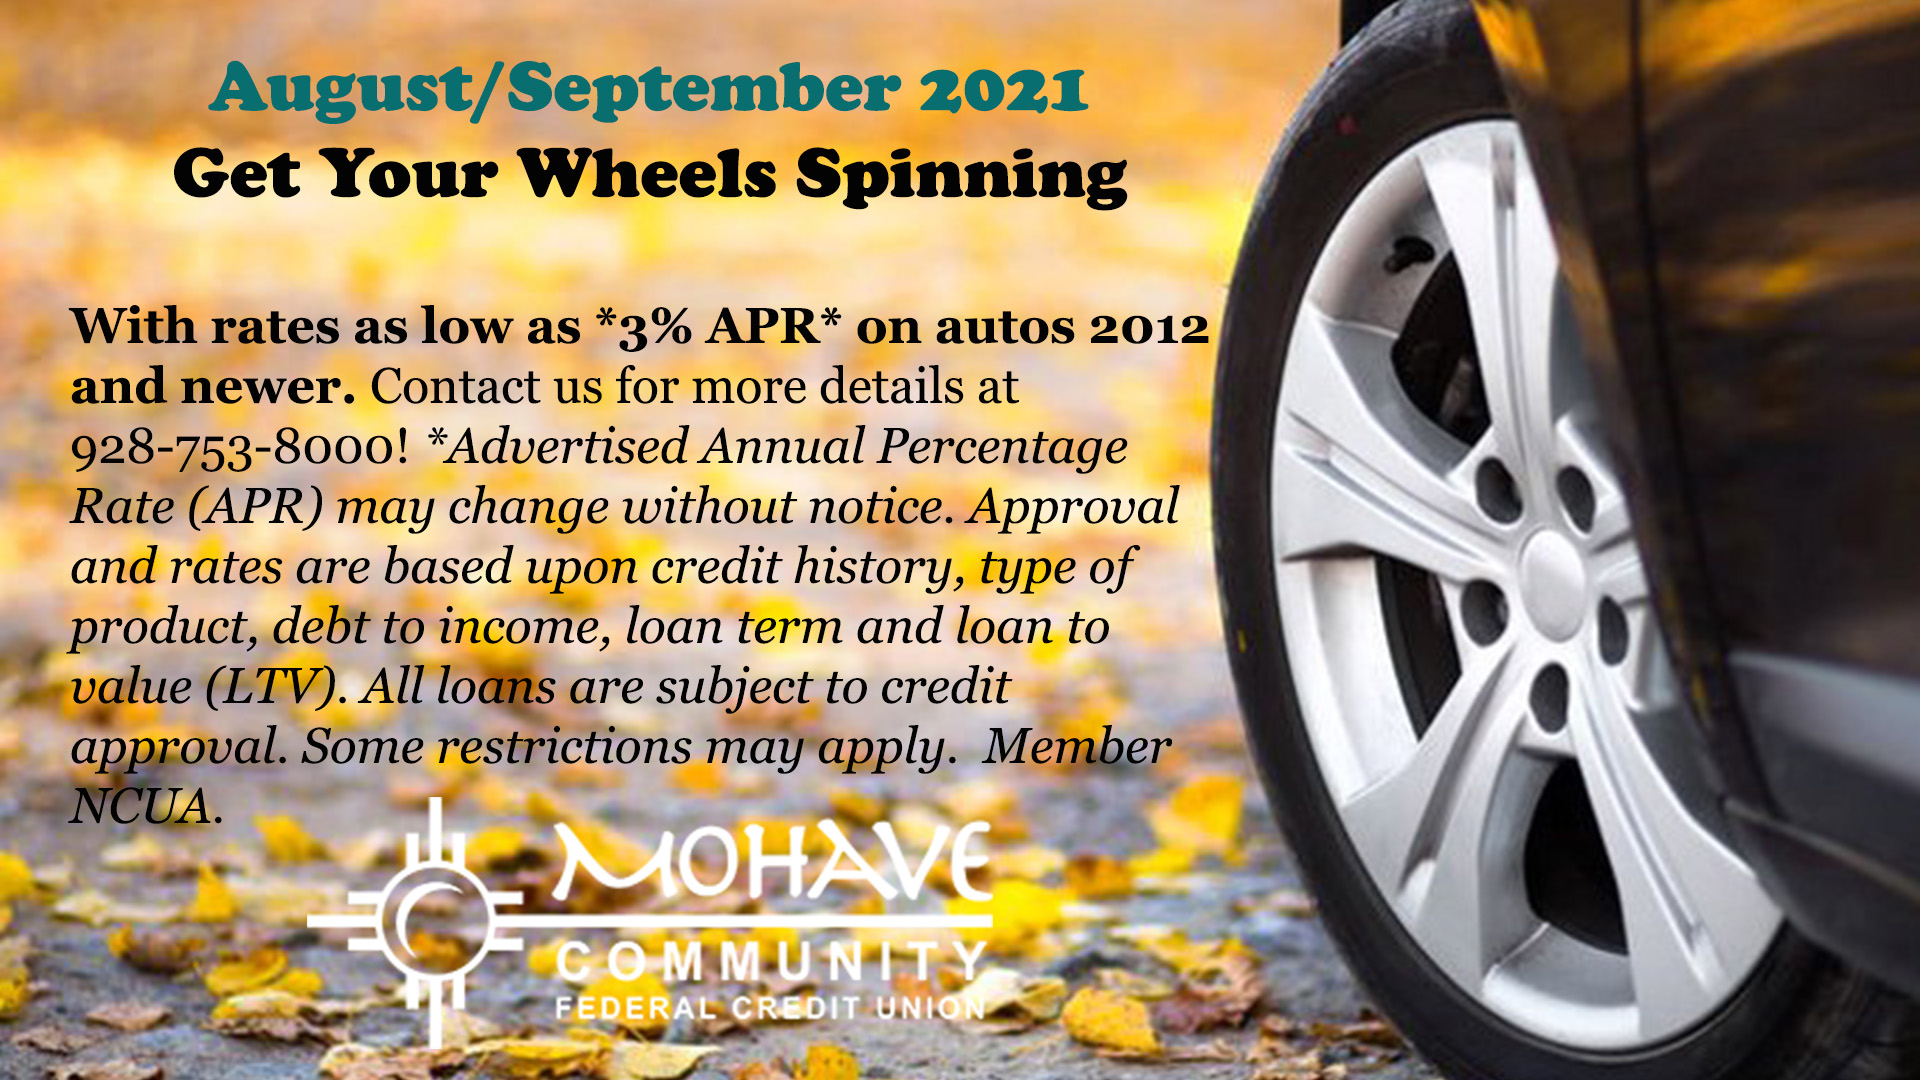 August 1st - September 31st, get your wheels spinning with auto loan rates as low as 3 % APR on all 2012 or newer autos! Approval based on credit score, debt to income ratio, loan to value and term. Some restrictions do apply. Member NCUA.